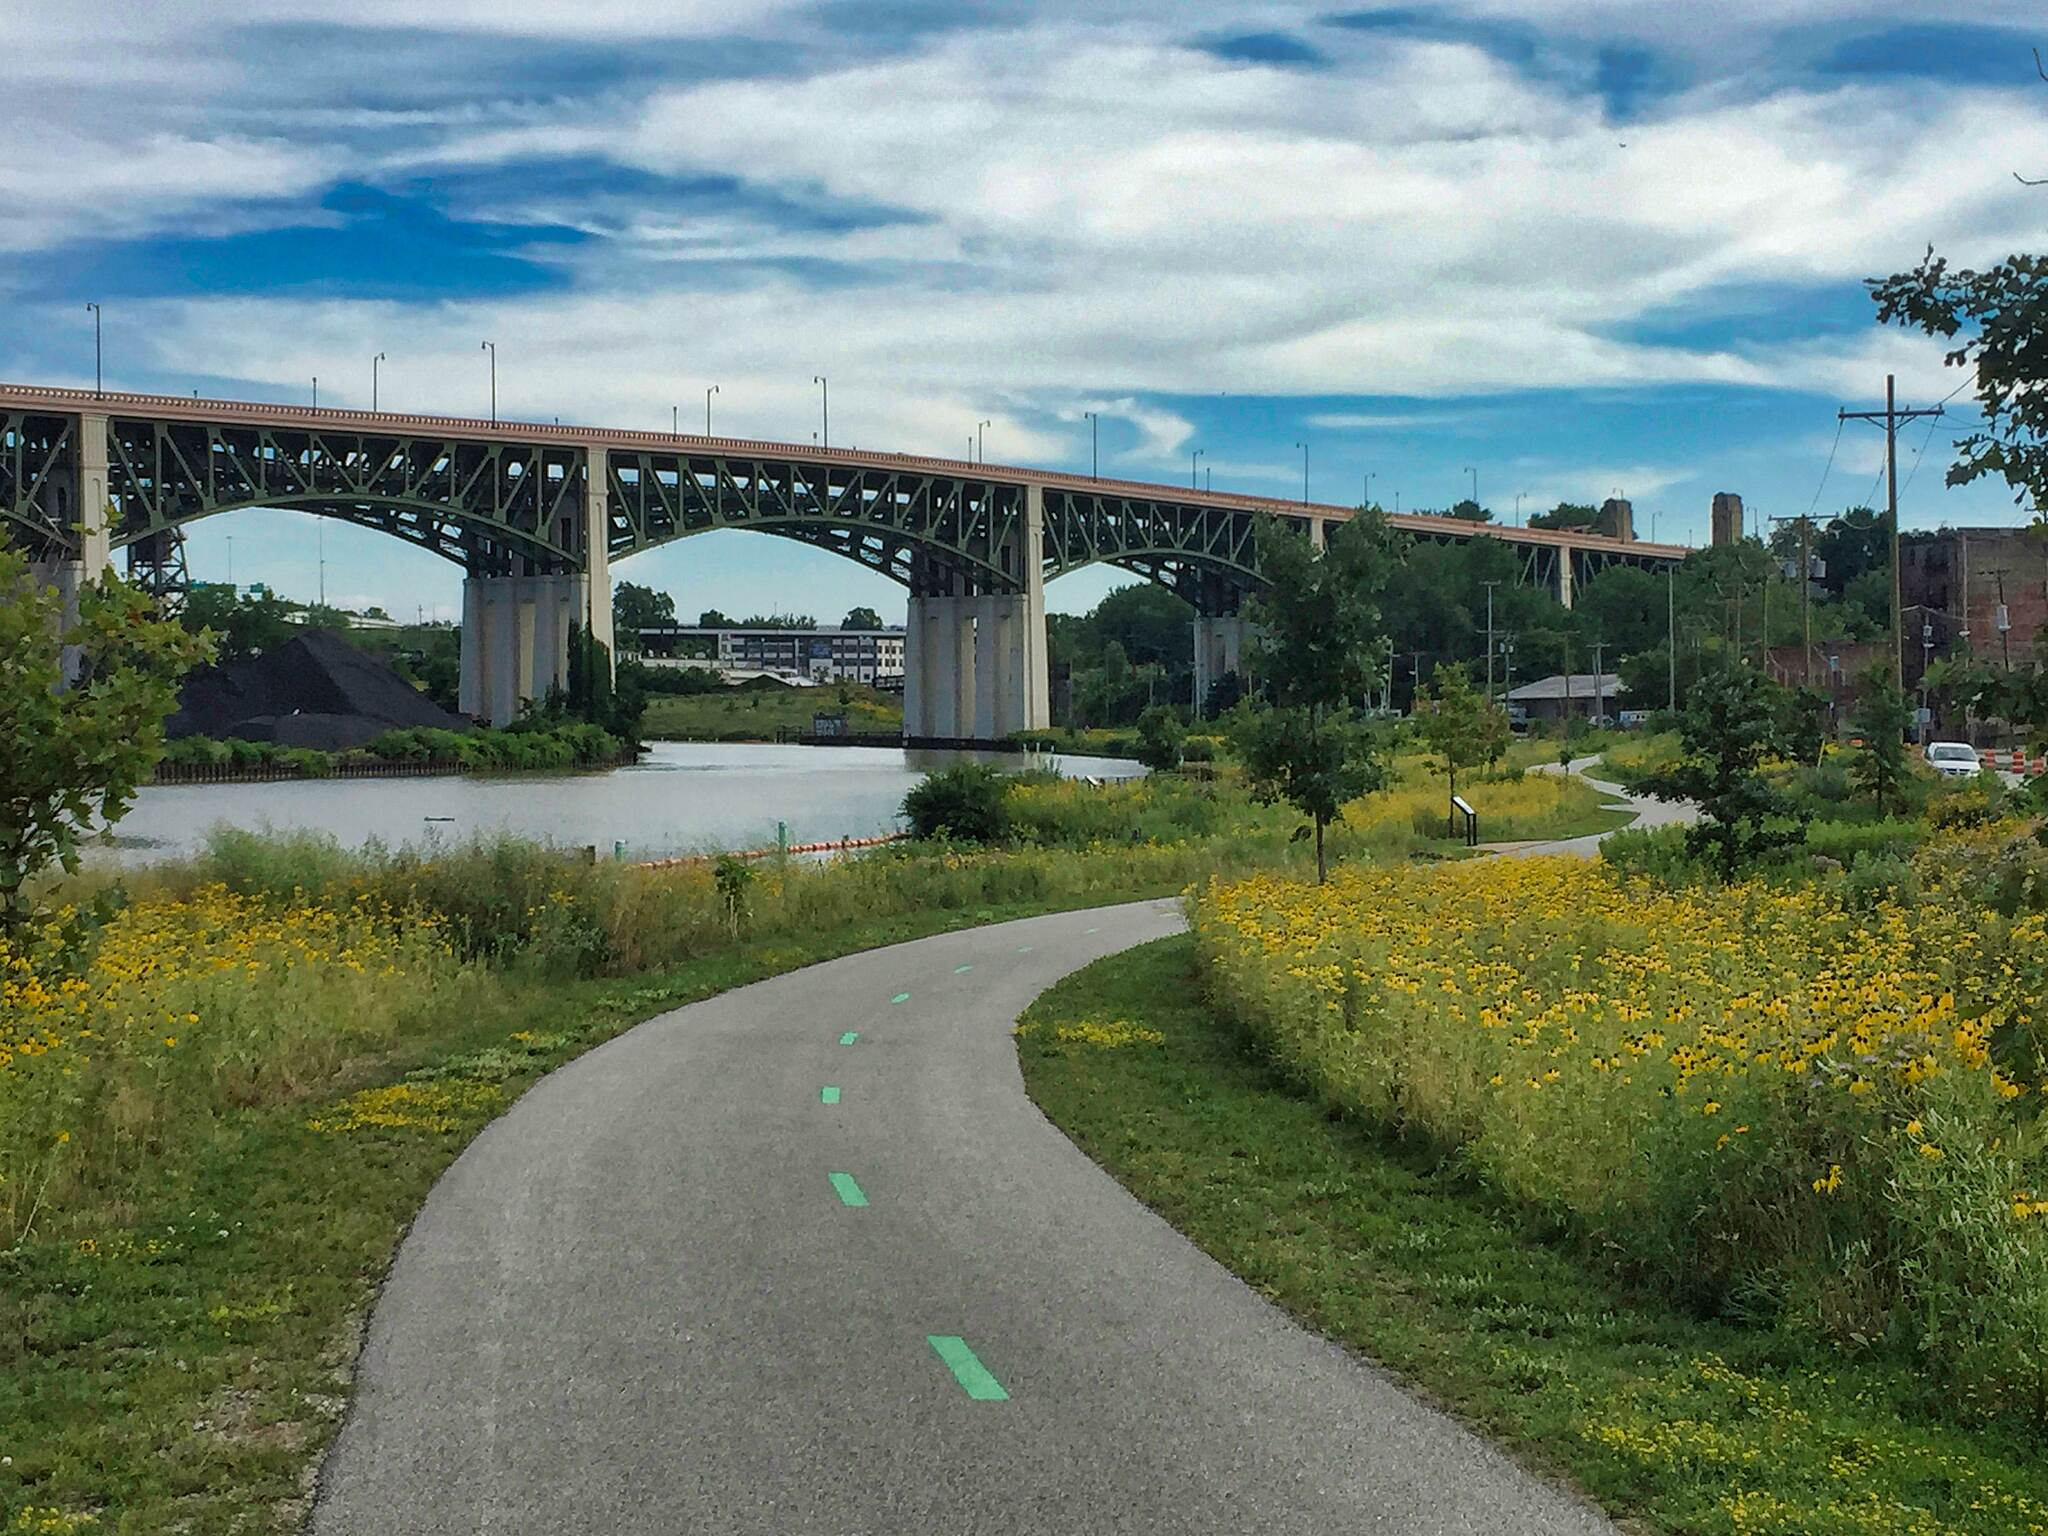 Ohio & Erie Canal Towpath Trail Hope Memorial Bridge A view of the Hope Memorial Bridge as seen from the Scranton Flats Section of Ohio and Erie Canal Towpath Trail.  July 25, 2017.